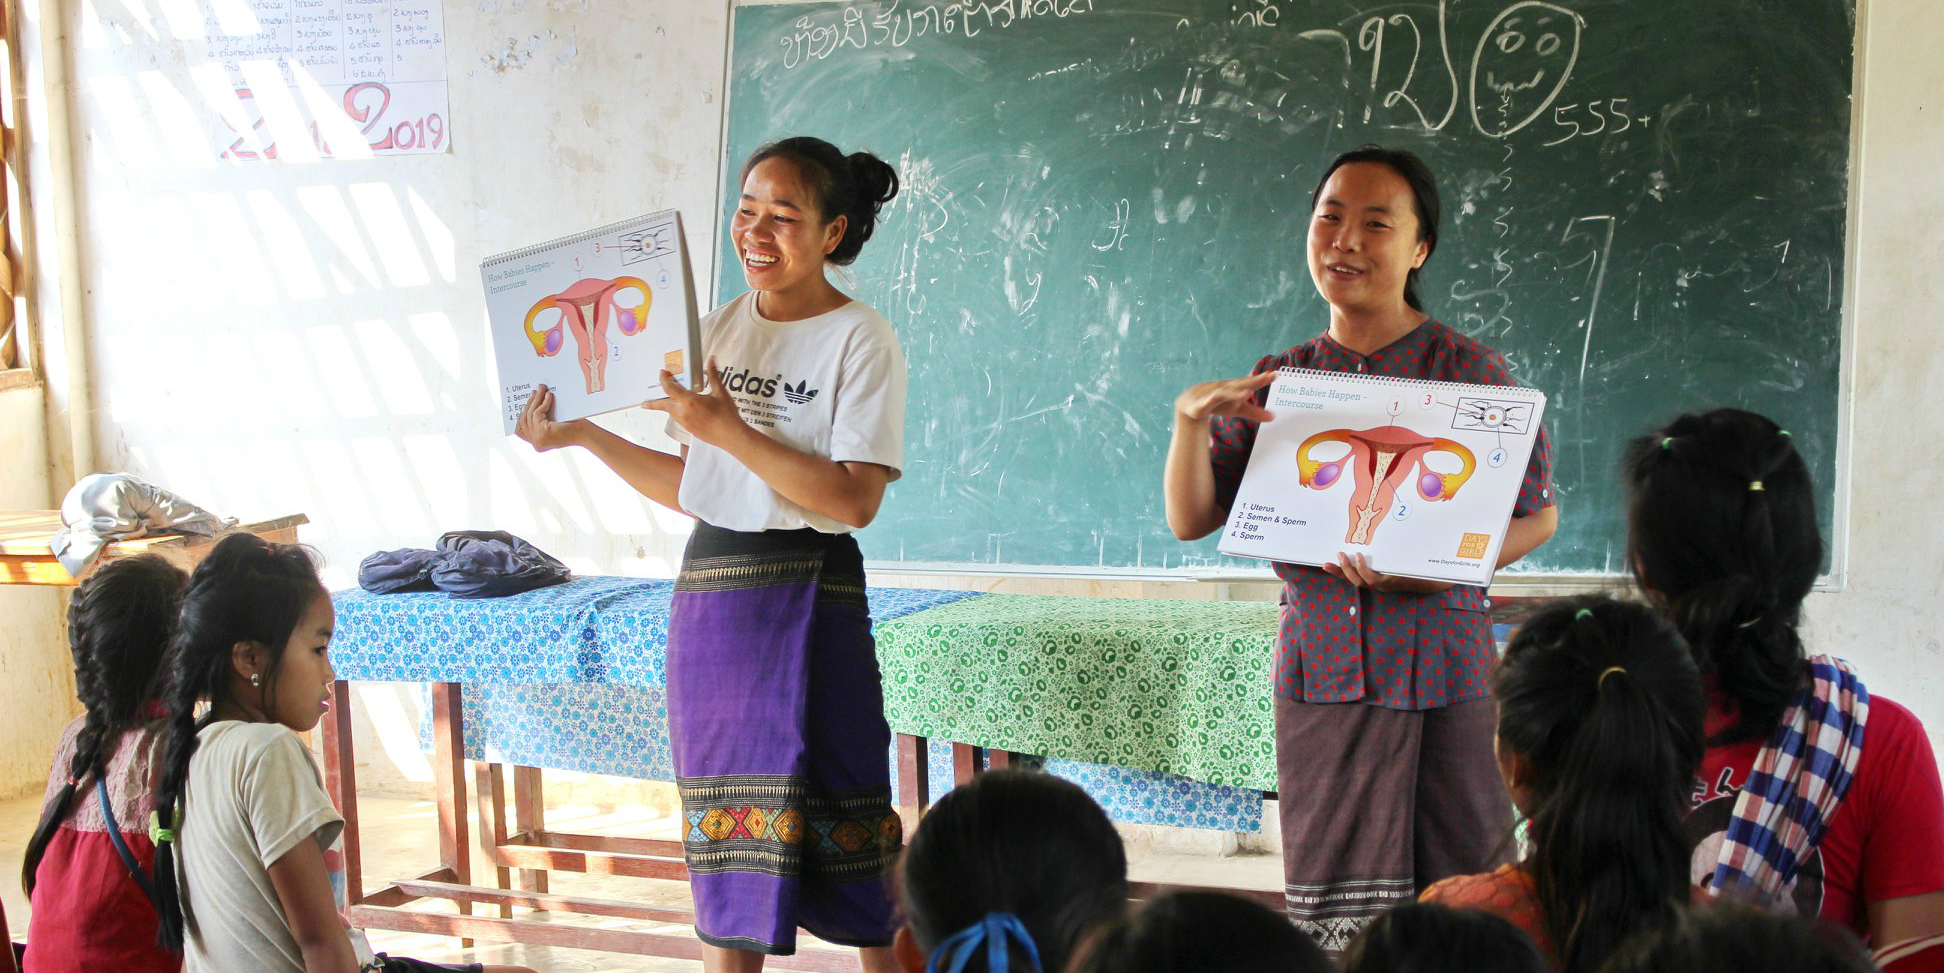 GVI-trained local leaders deliver a menstrual health workshop in Laos, as part of women's empowerment work.